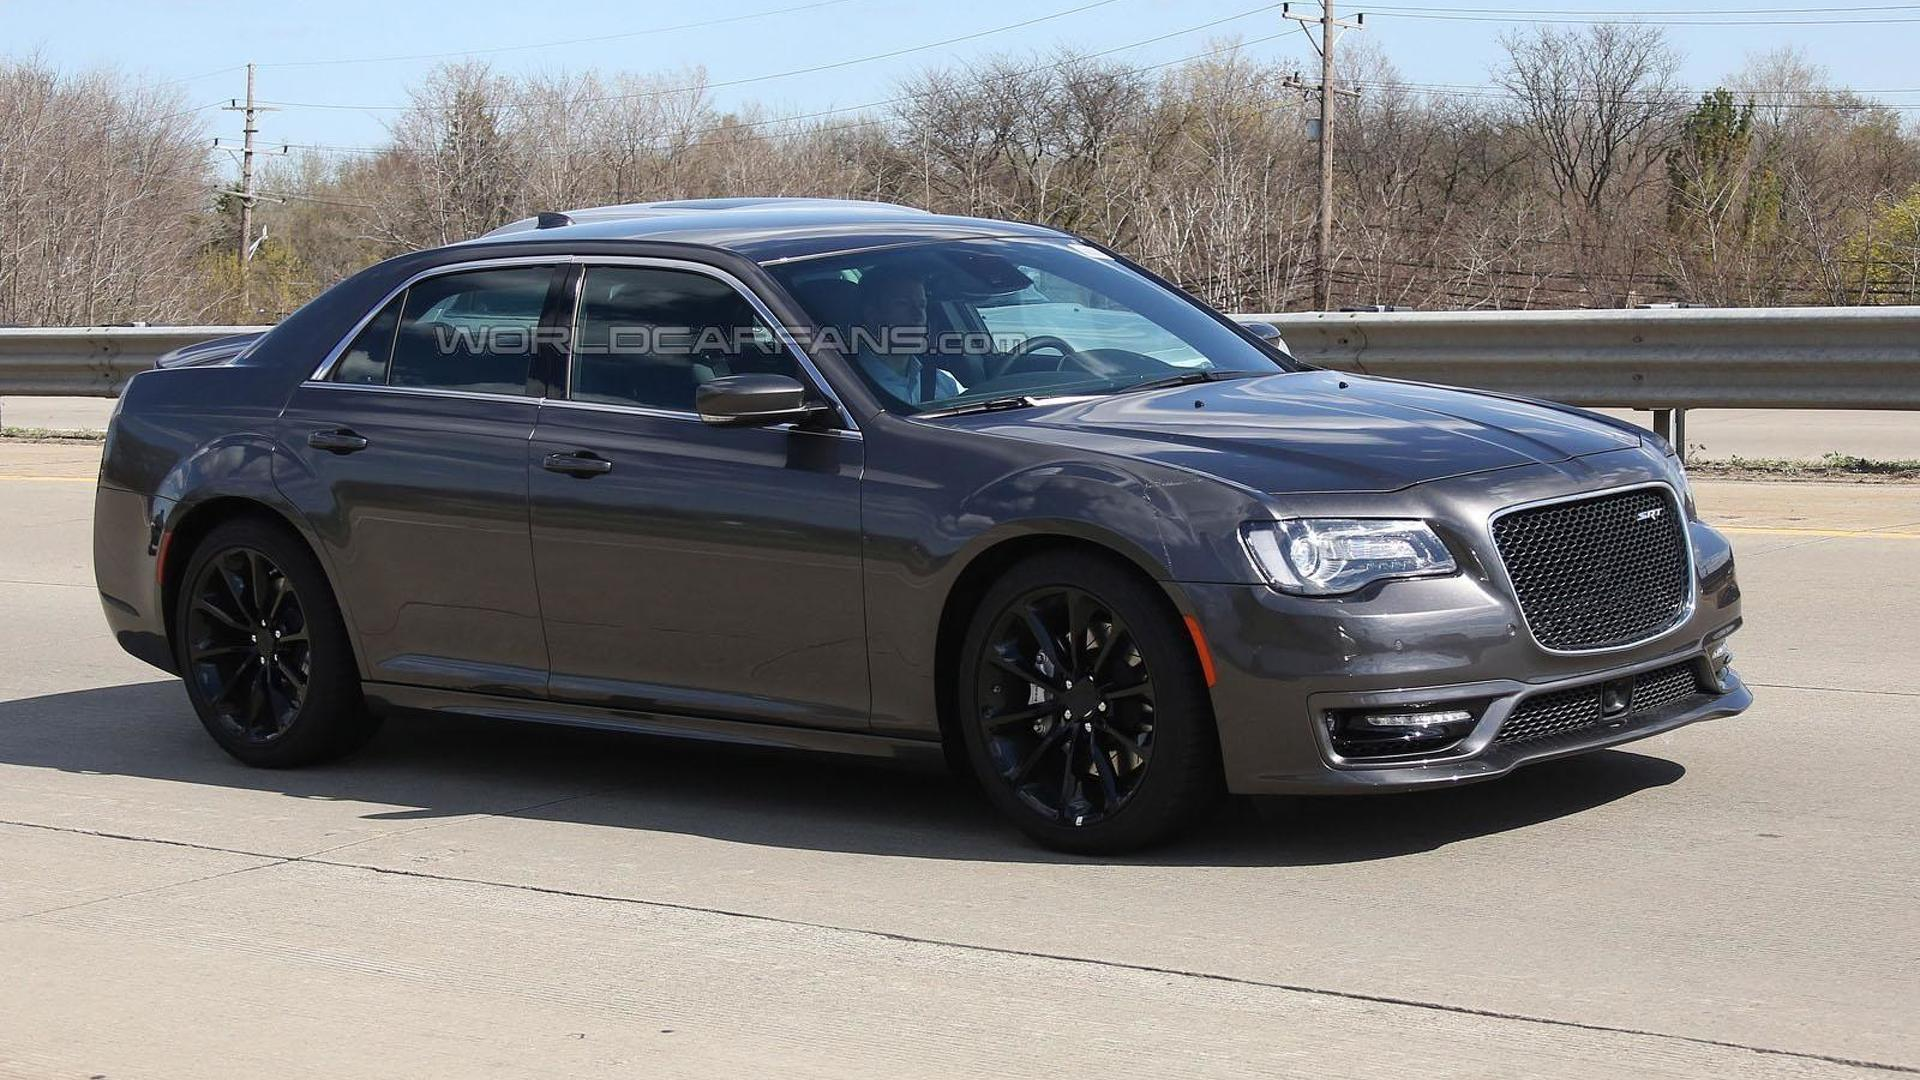 Should You Buy a Chrysler 300 SRT